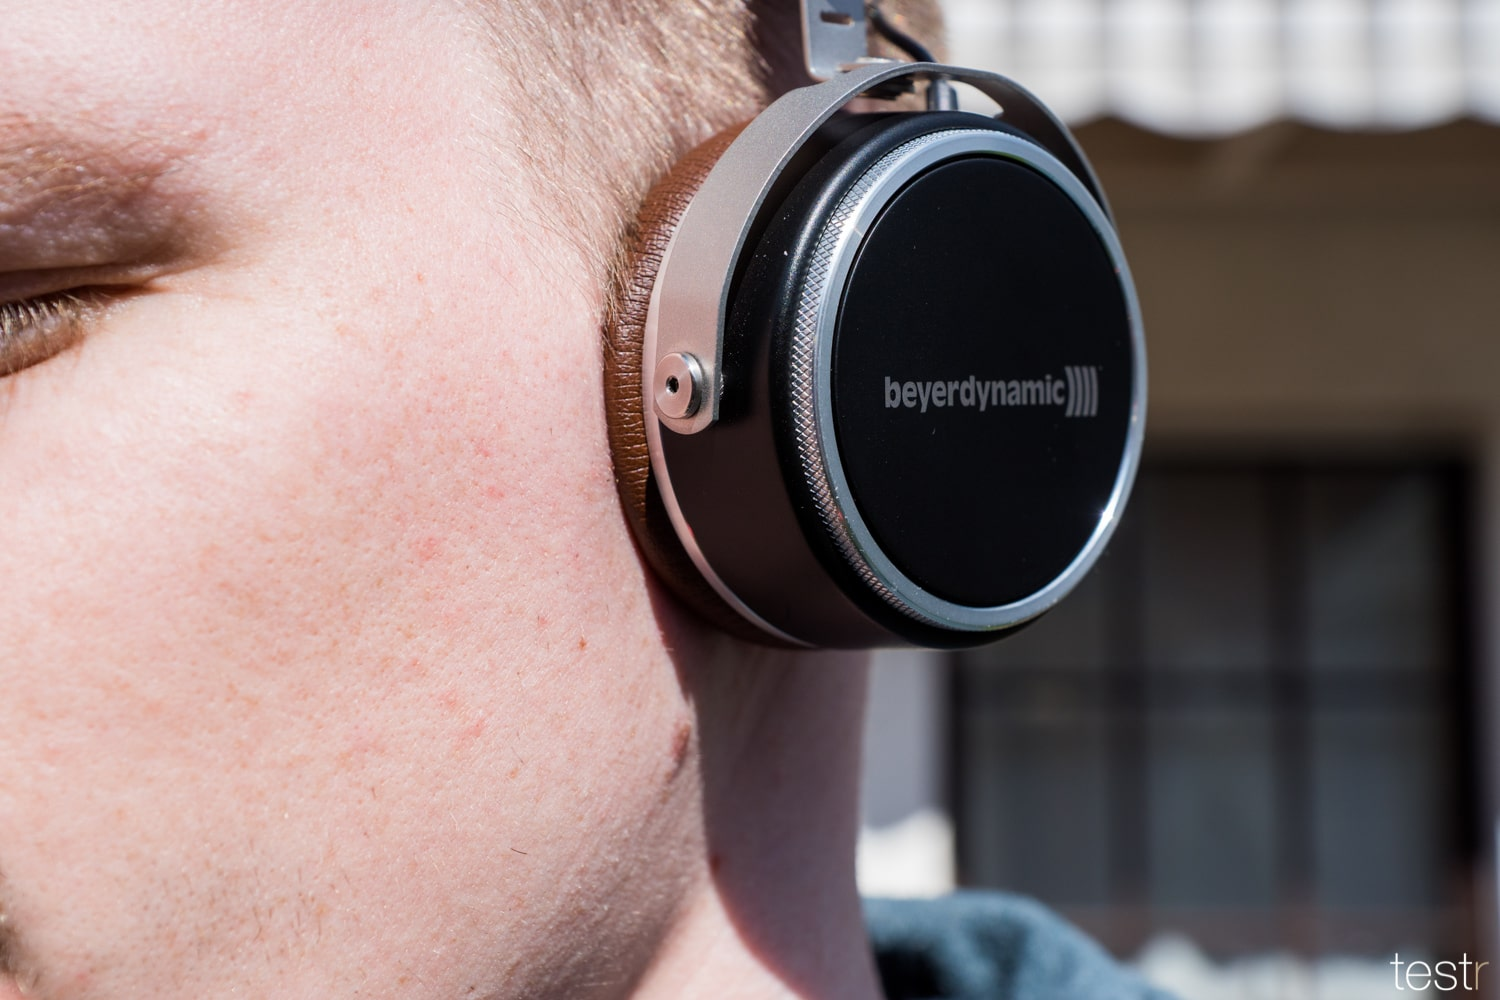 Bayerdynamic Avento Wireless 33